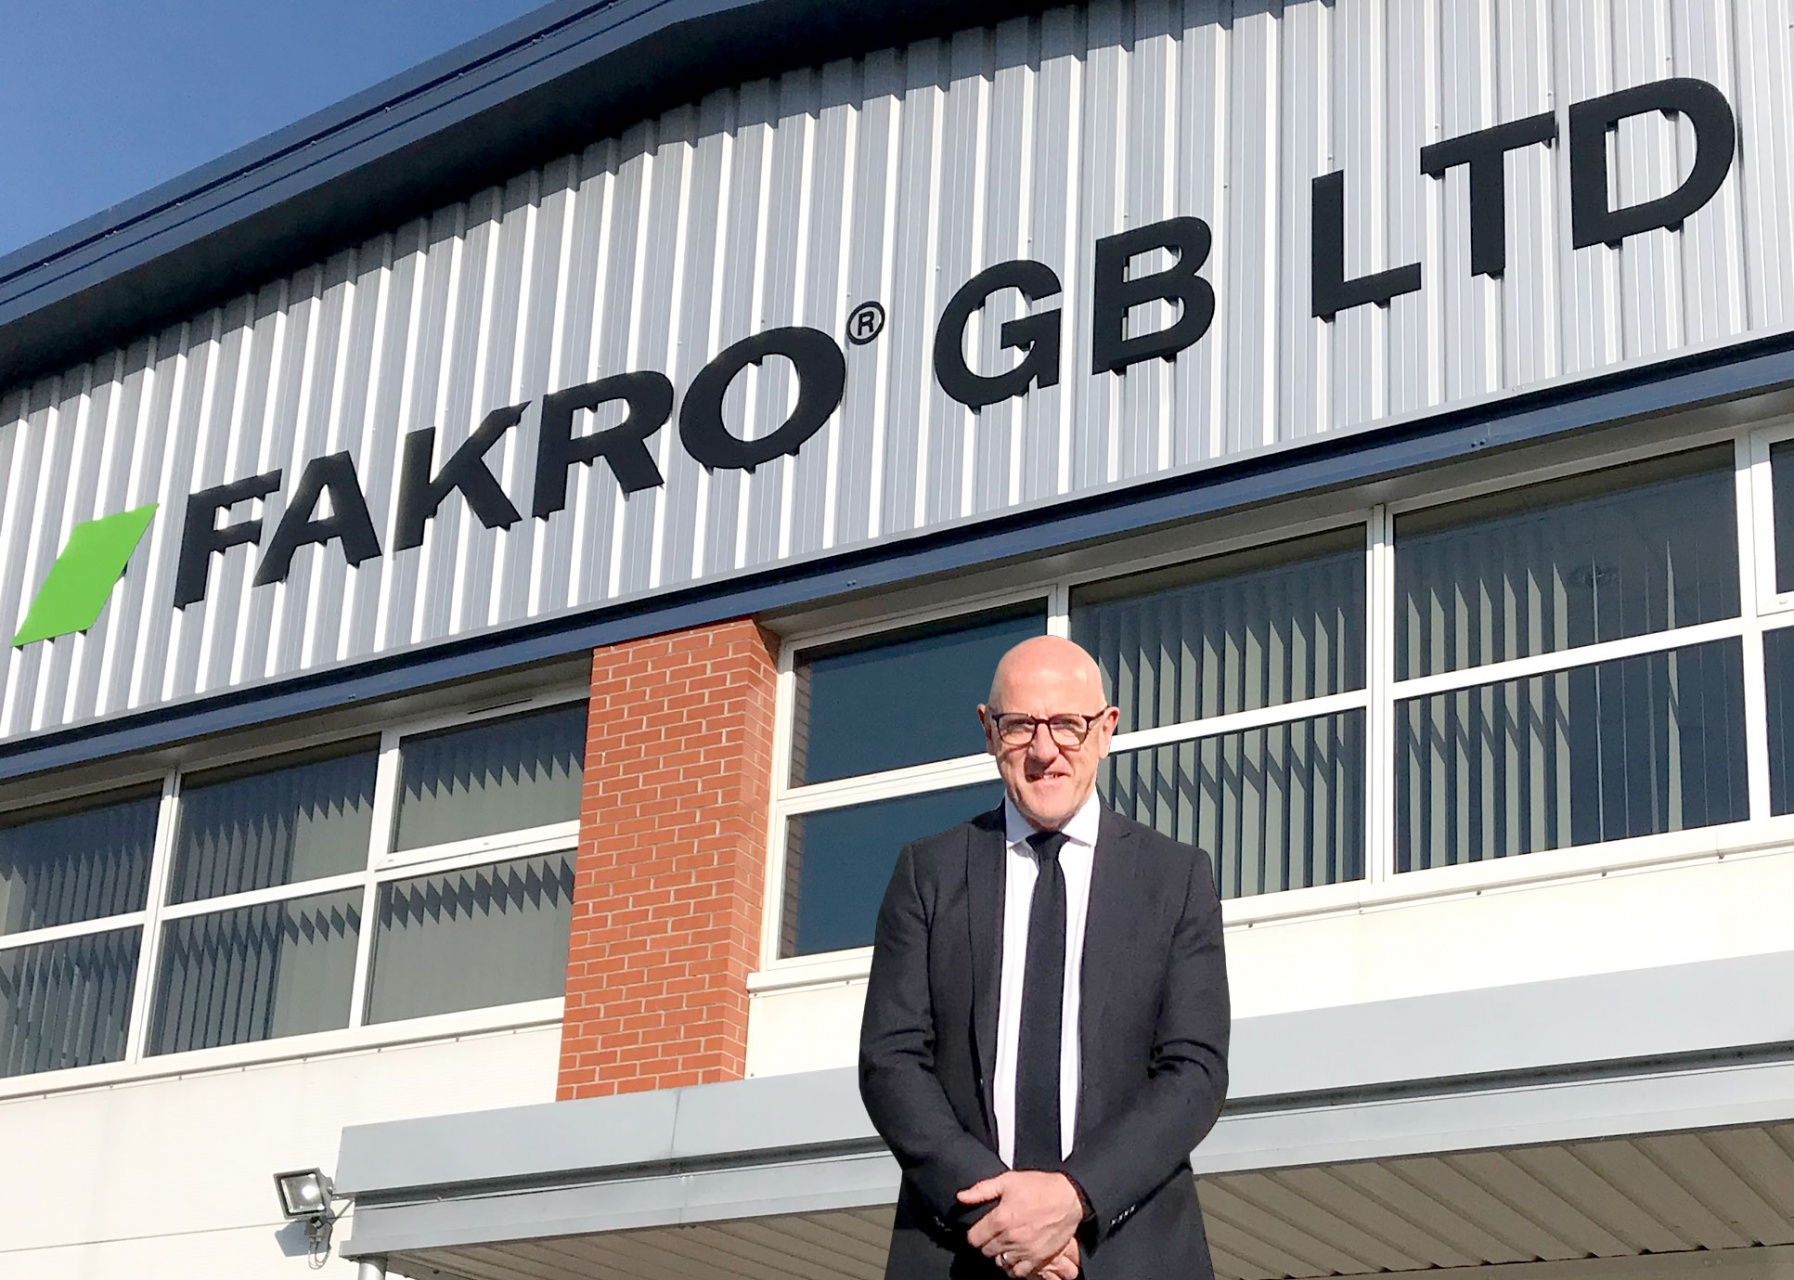 FAKRO GB Provide Expanded Customer Support with New Commercial Manager